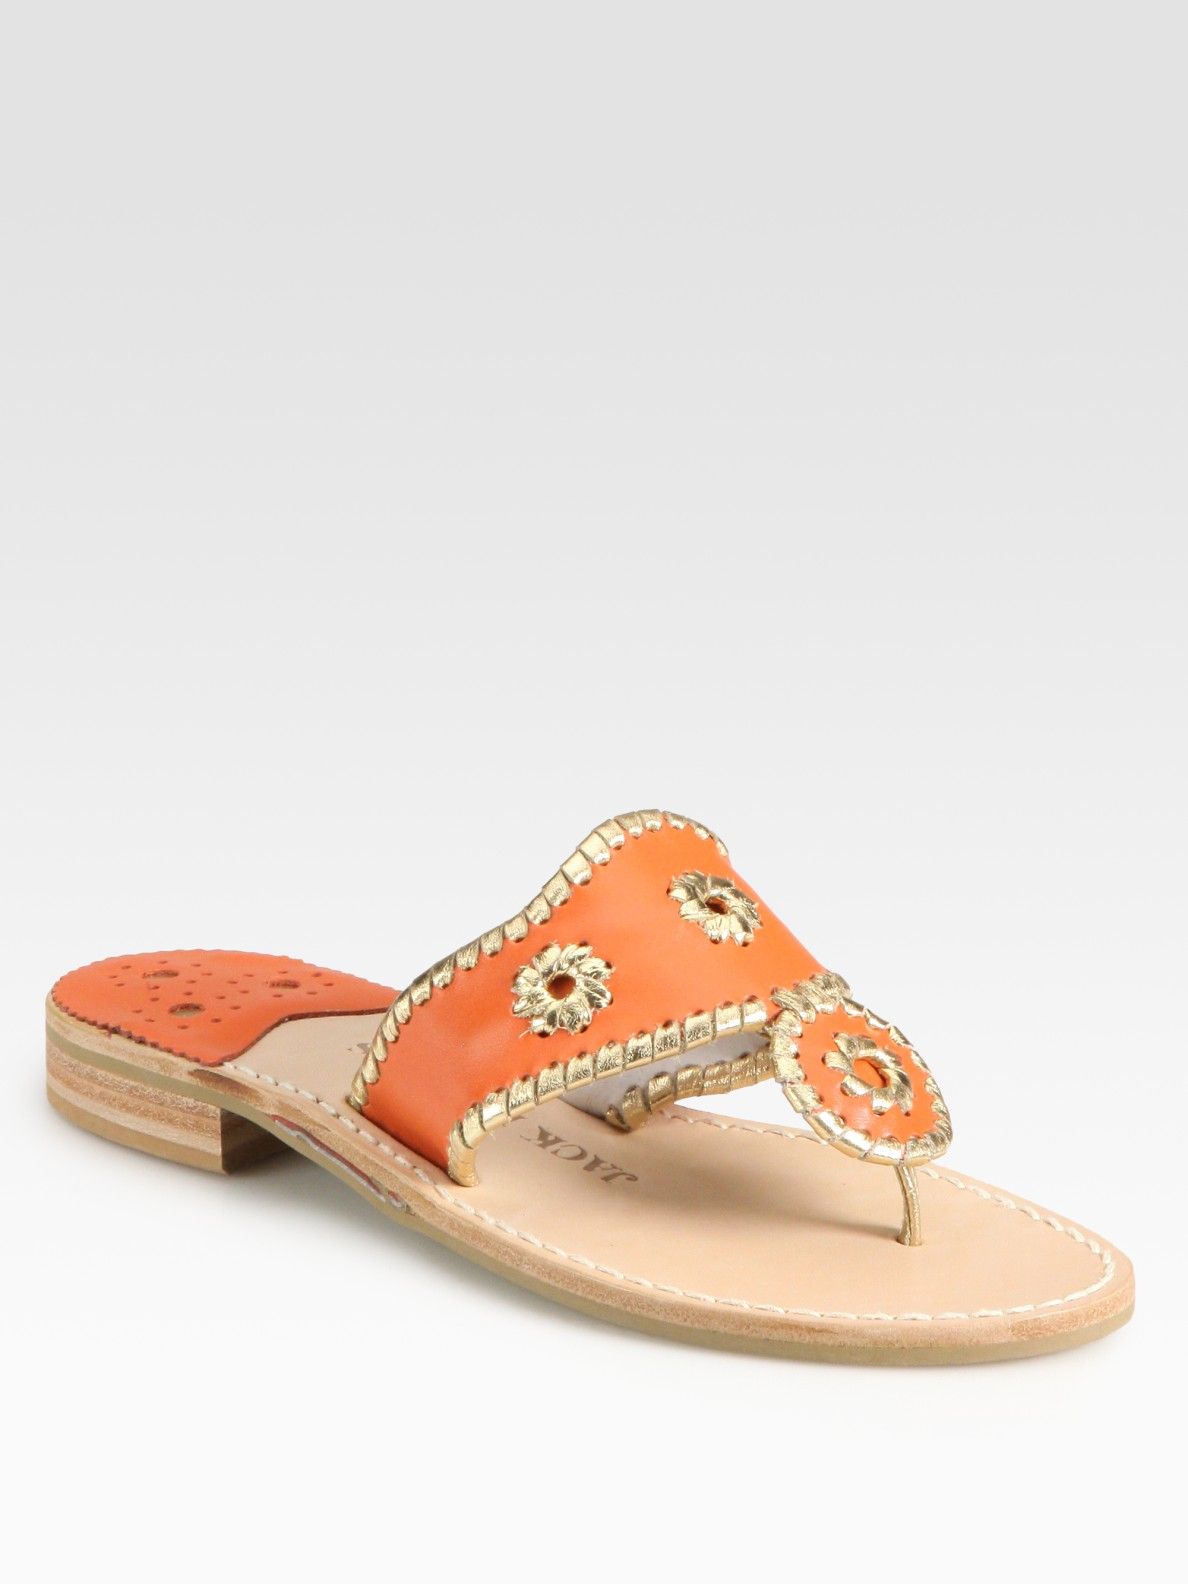 Jack Rogers Rio Leather Thong Sandals In Orange Lyst